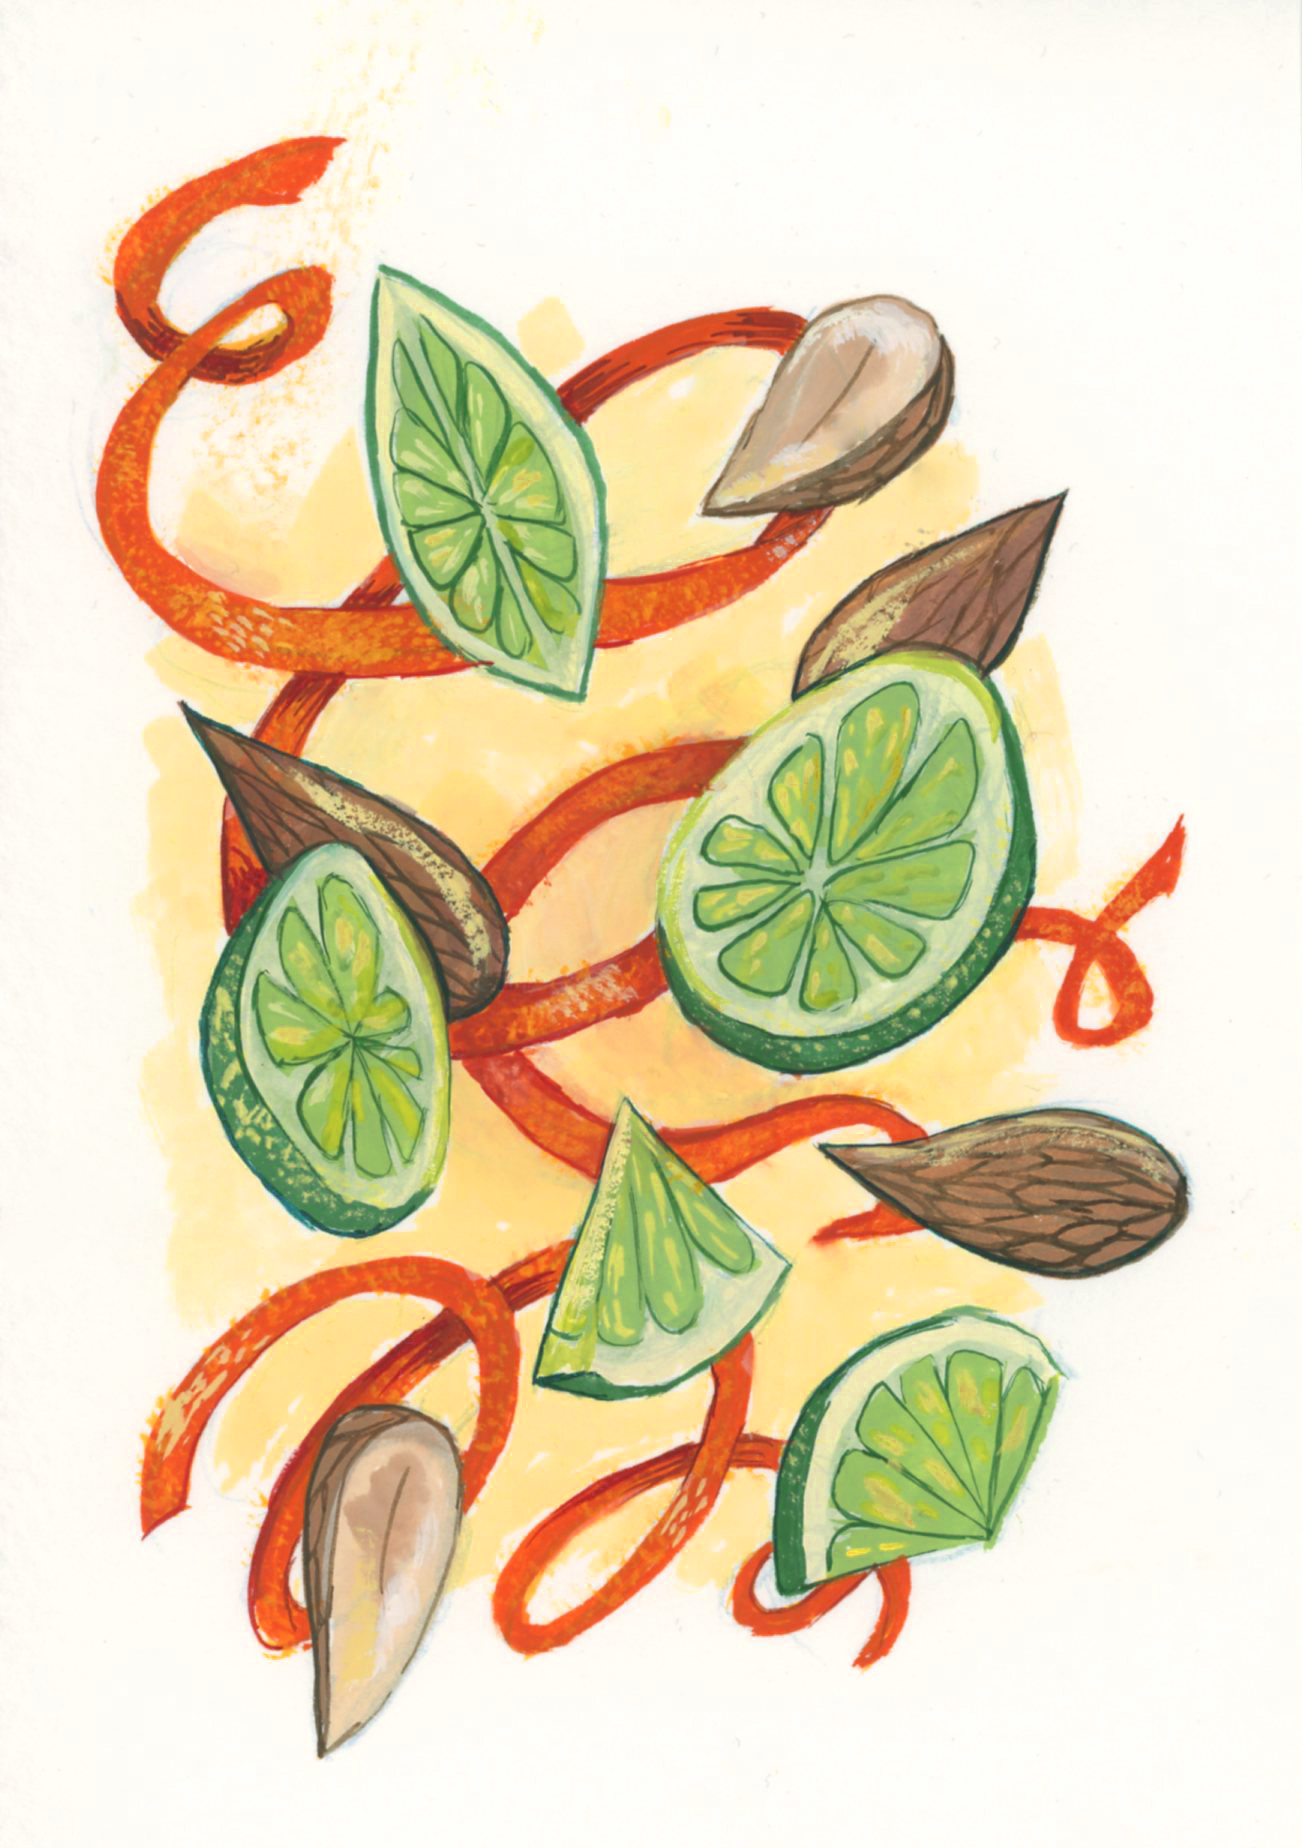 Citrus fruits to celebrate the onset of summer!